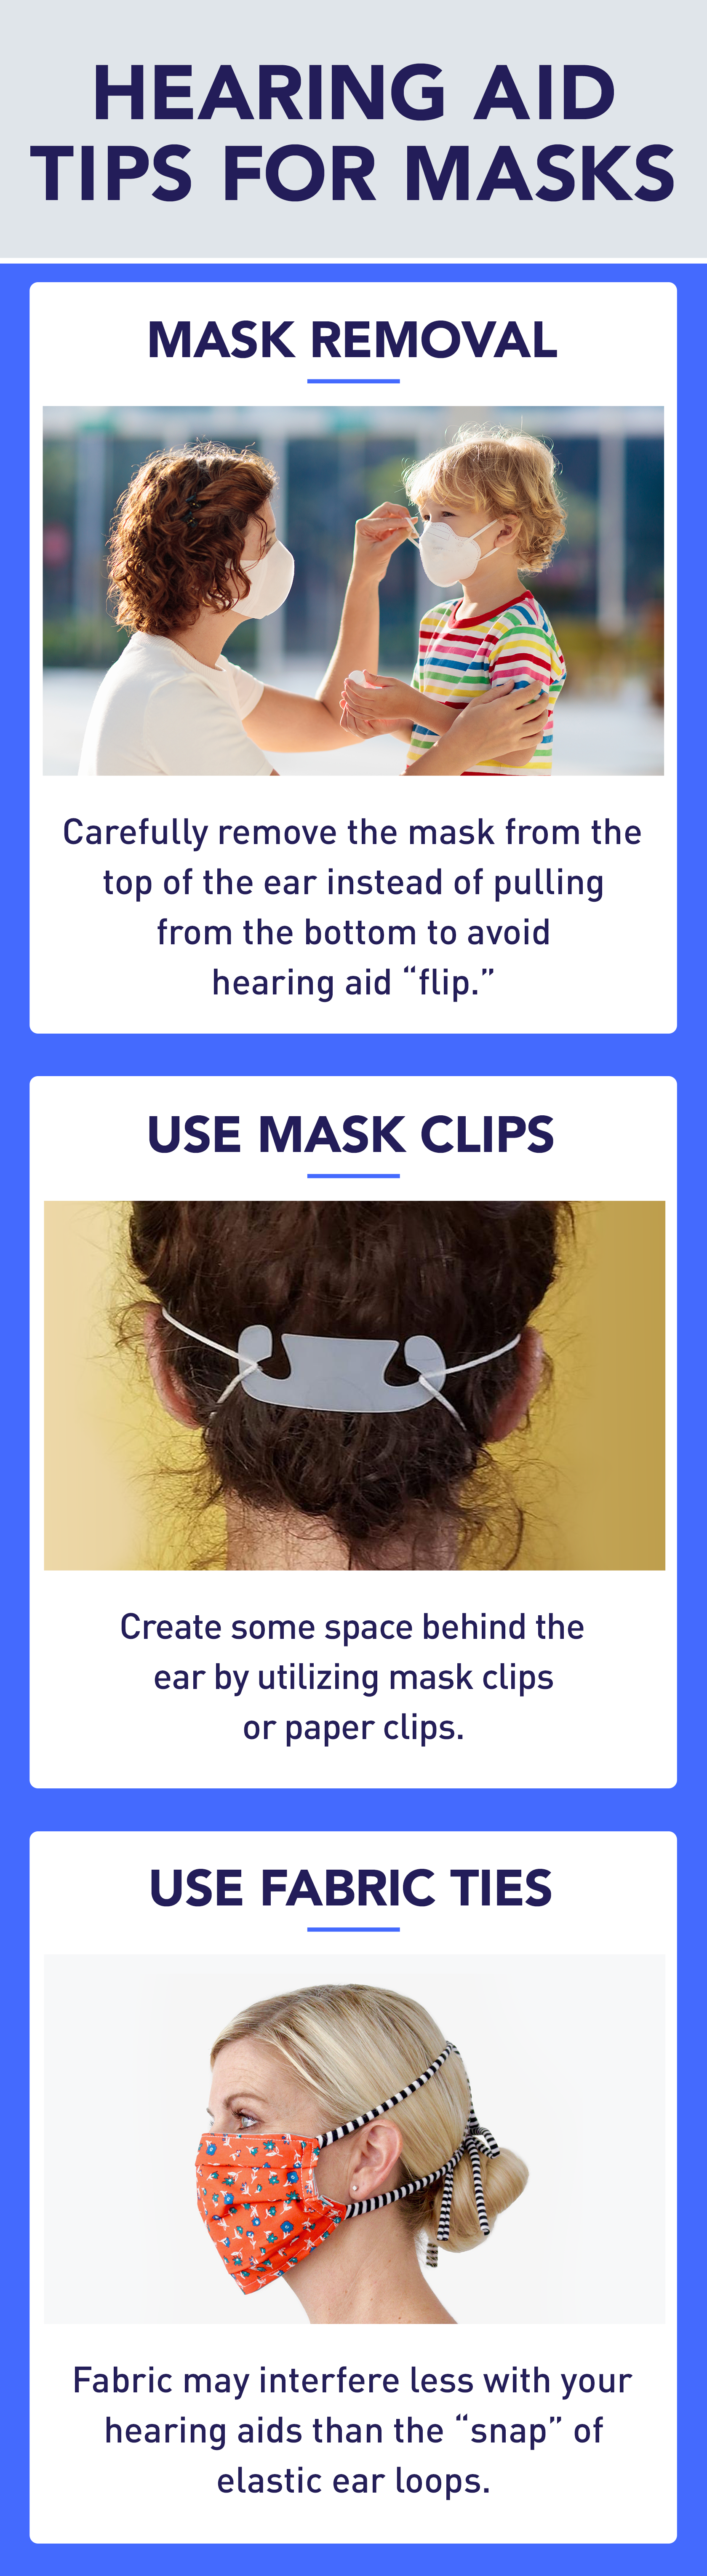 Hearing Aid Mask Tips